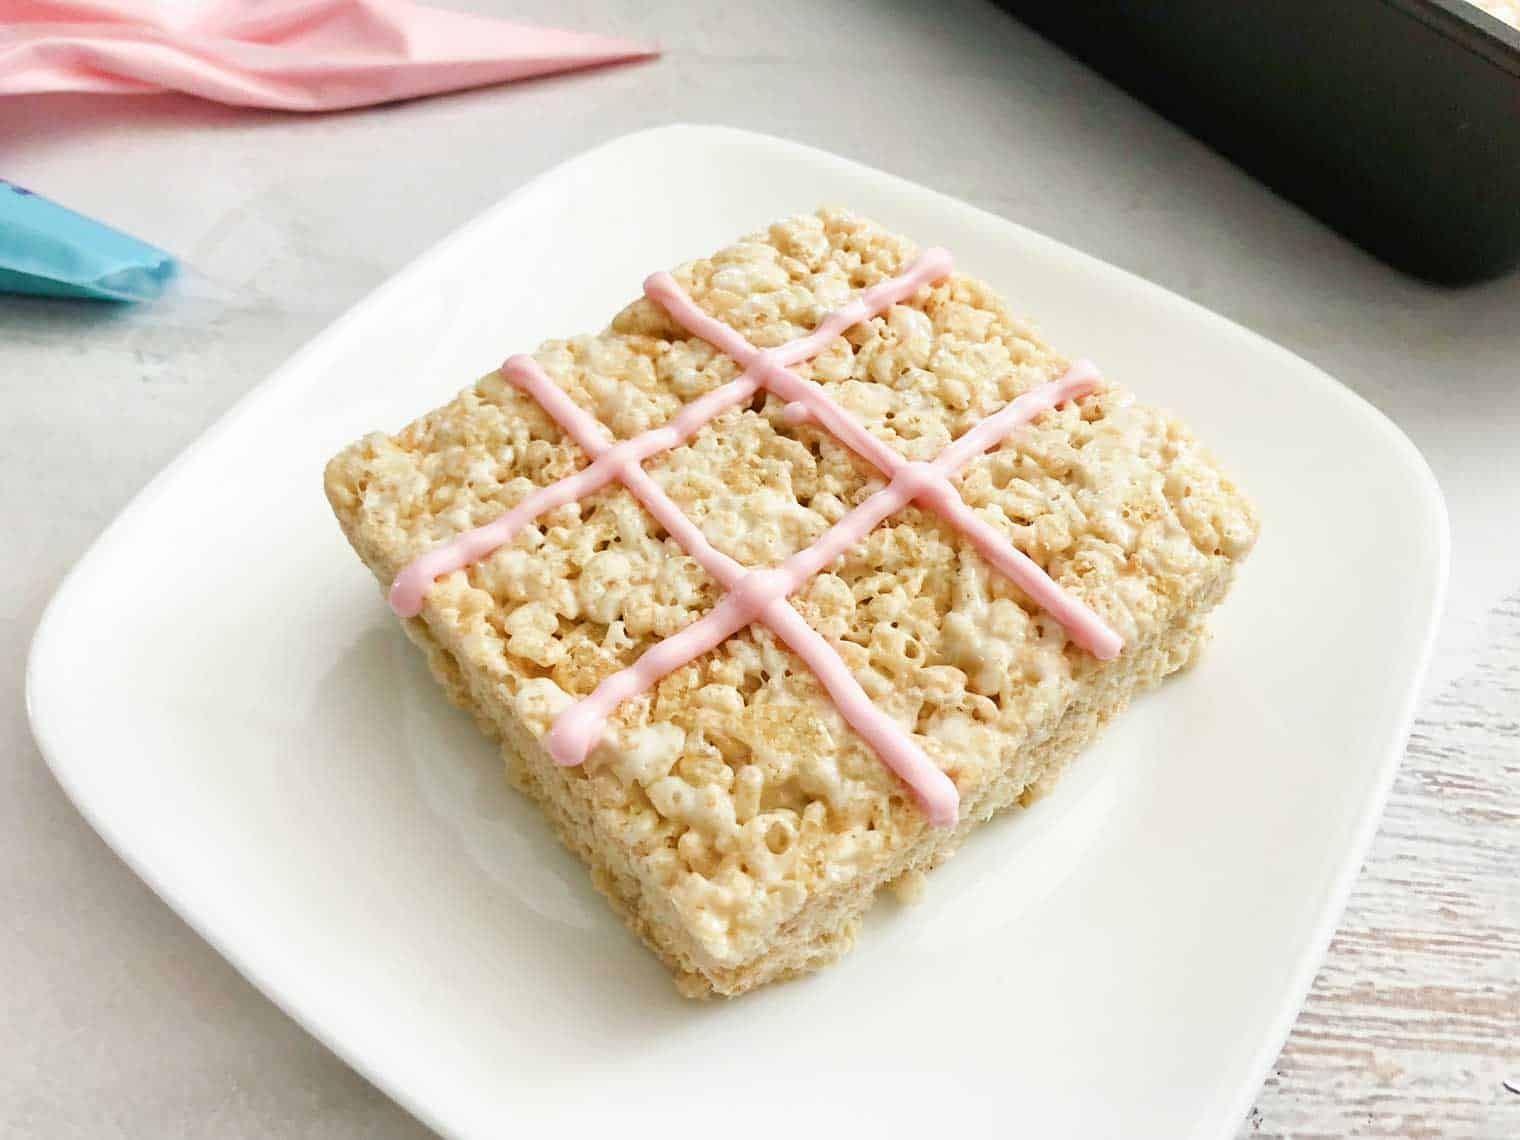 make tic tac toe board with icing on each rice krispie square